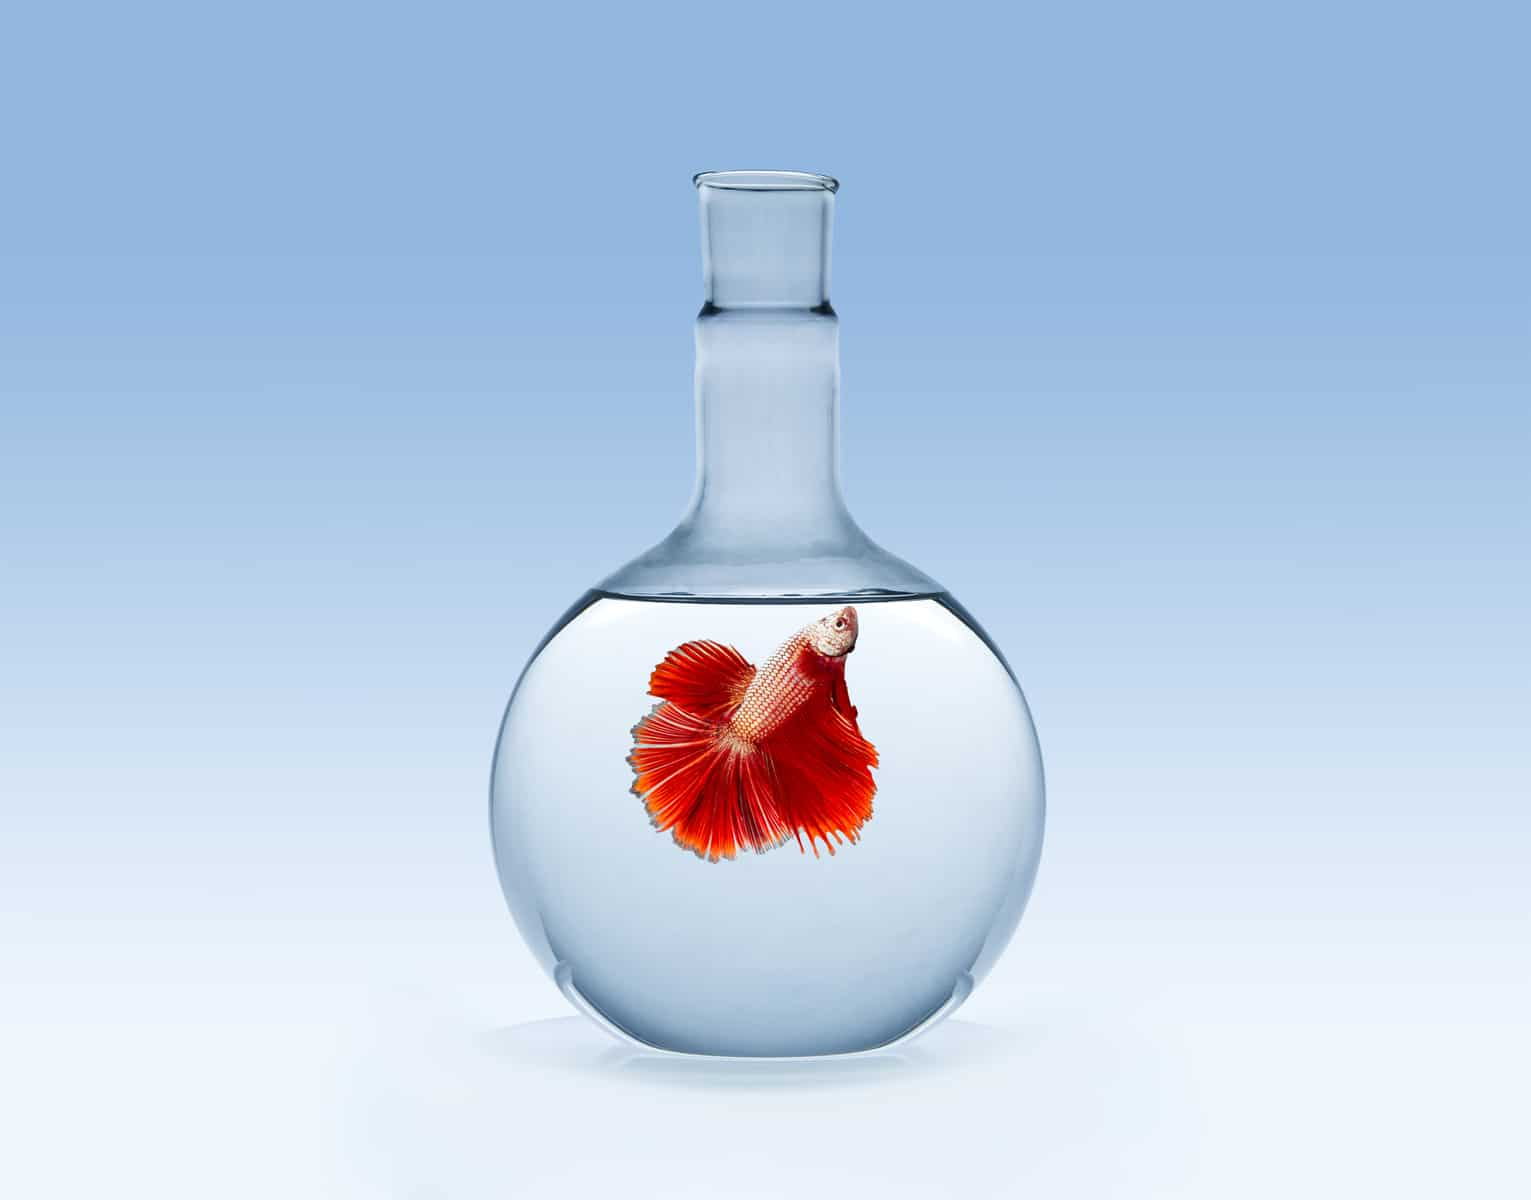 red betta fish in a fish bowl with clear water